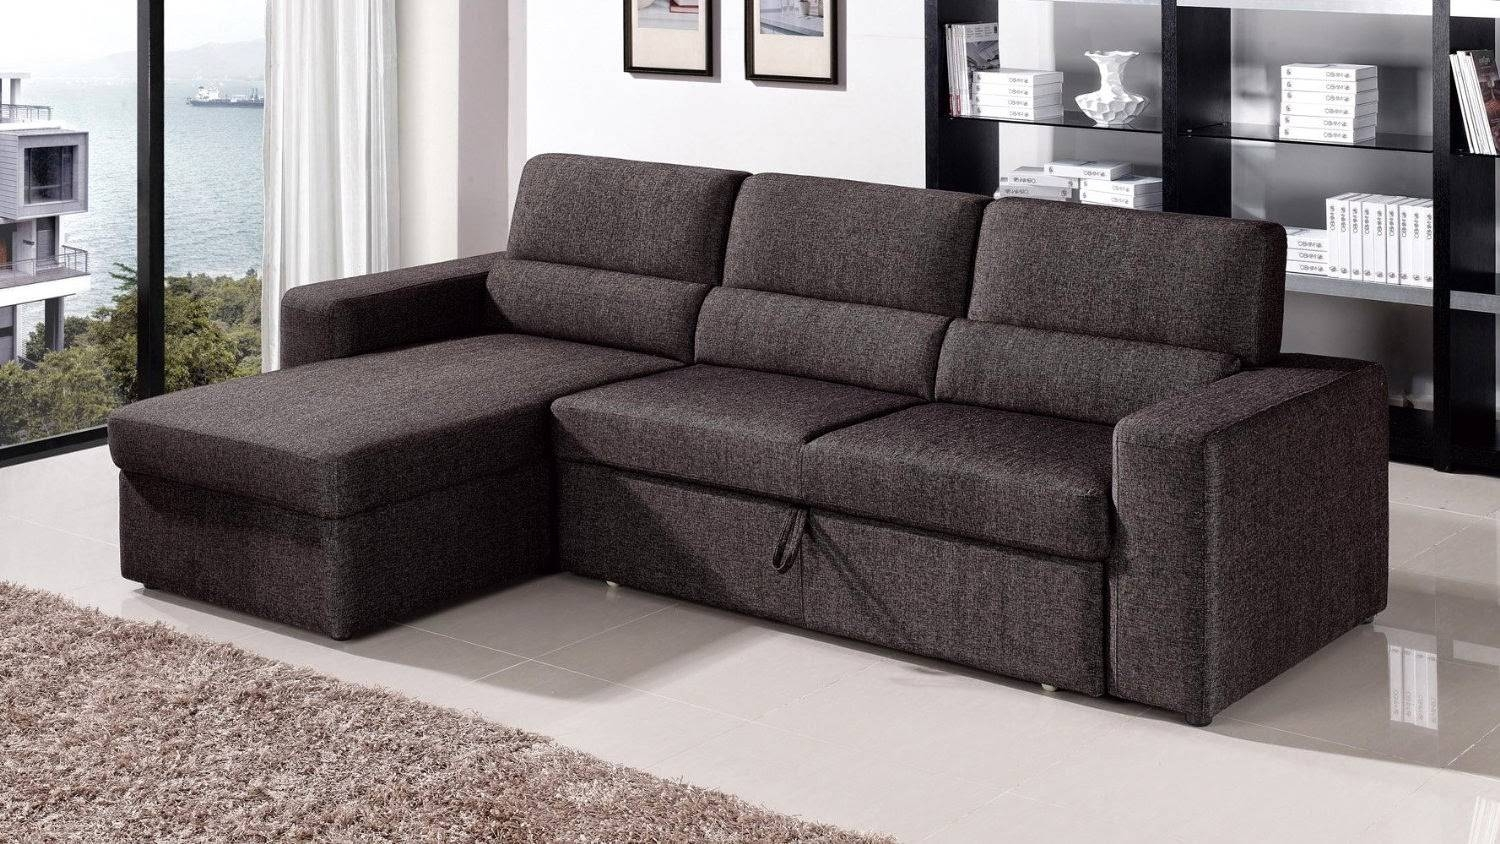 The Most Popular Fold Out Sectional Sleeper Sofa 39 In Durable intended for Durable Sectional Sofa (Image 26 of 30)